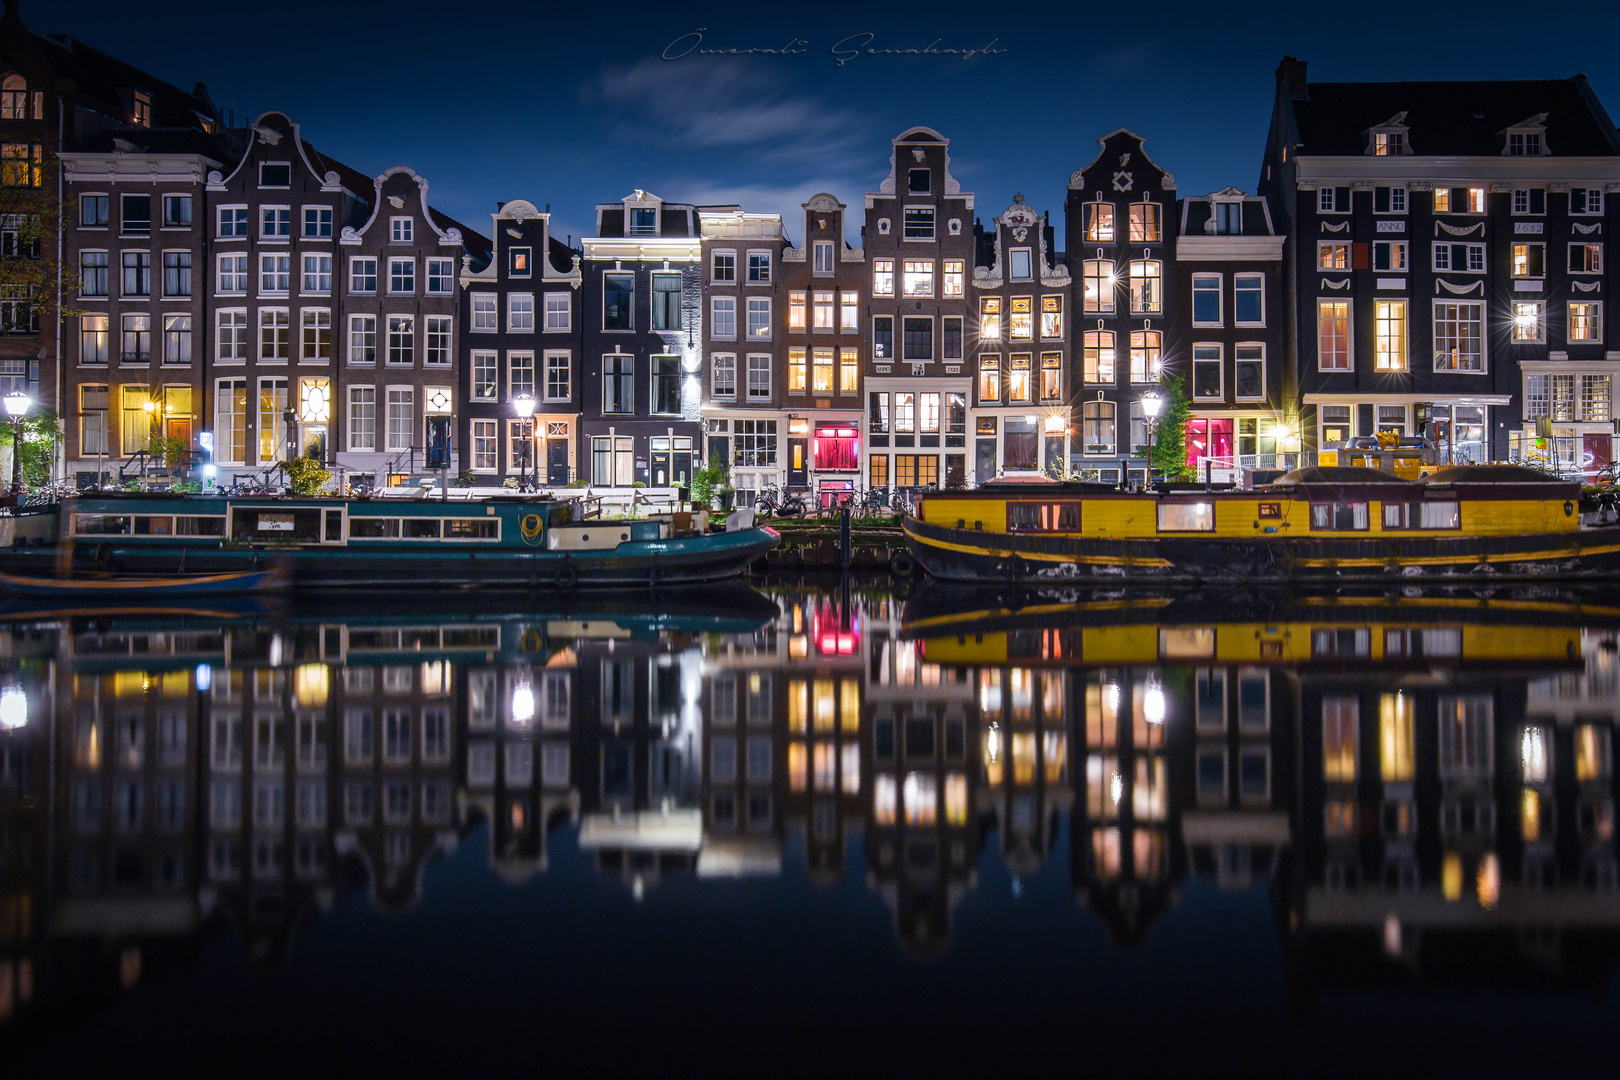 Reflection of Amsterdam